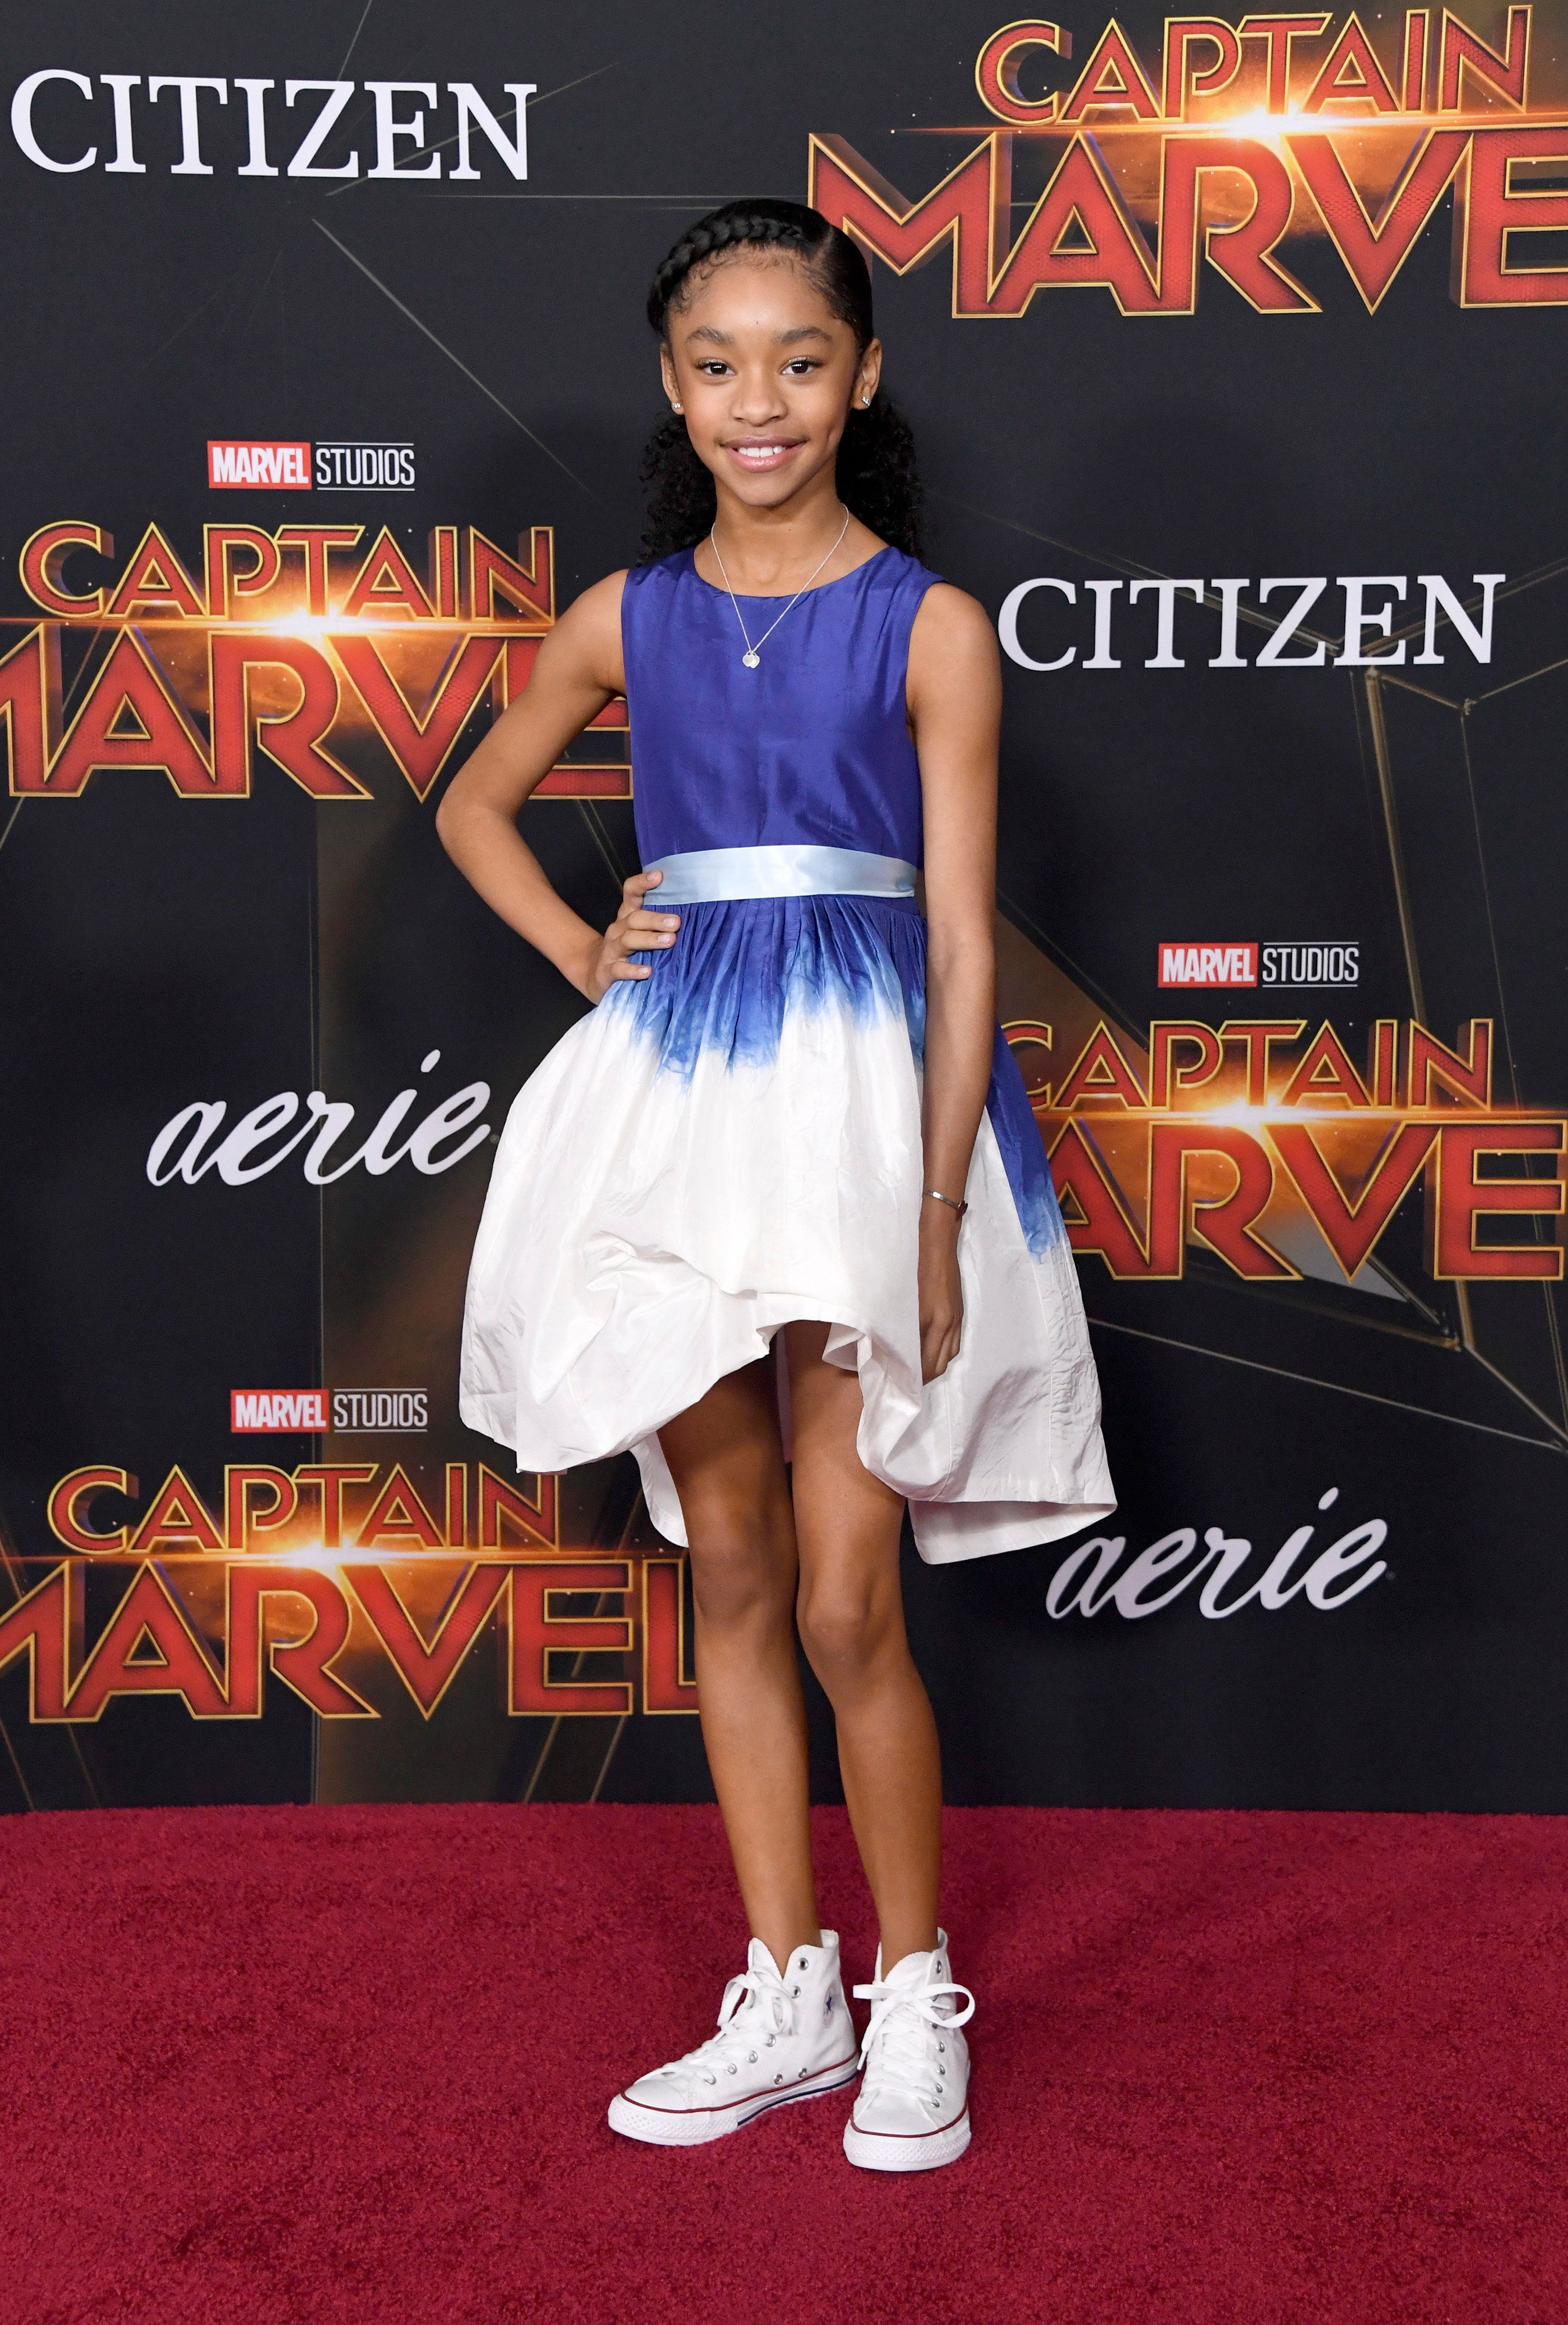 HOLLYWOOD, CALIFORNIA - MARCH 04: Akira Akbar attends the Marvel Studios 'Captain Marvel' premiere on March 04, 2019 in Hollywood, California. (Photo by Frazer Harrison/Getty Images)